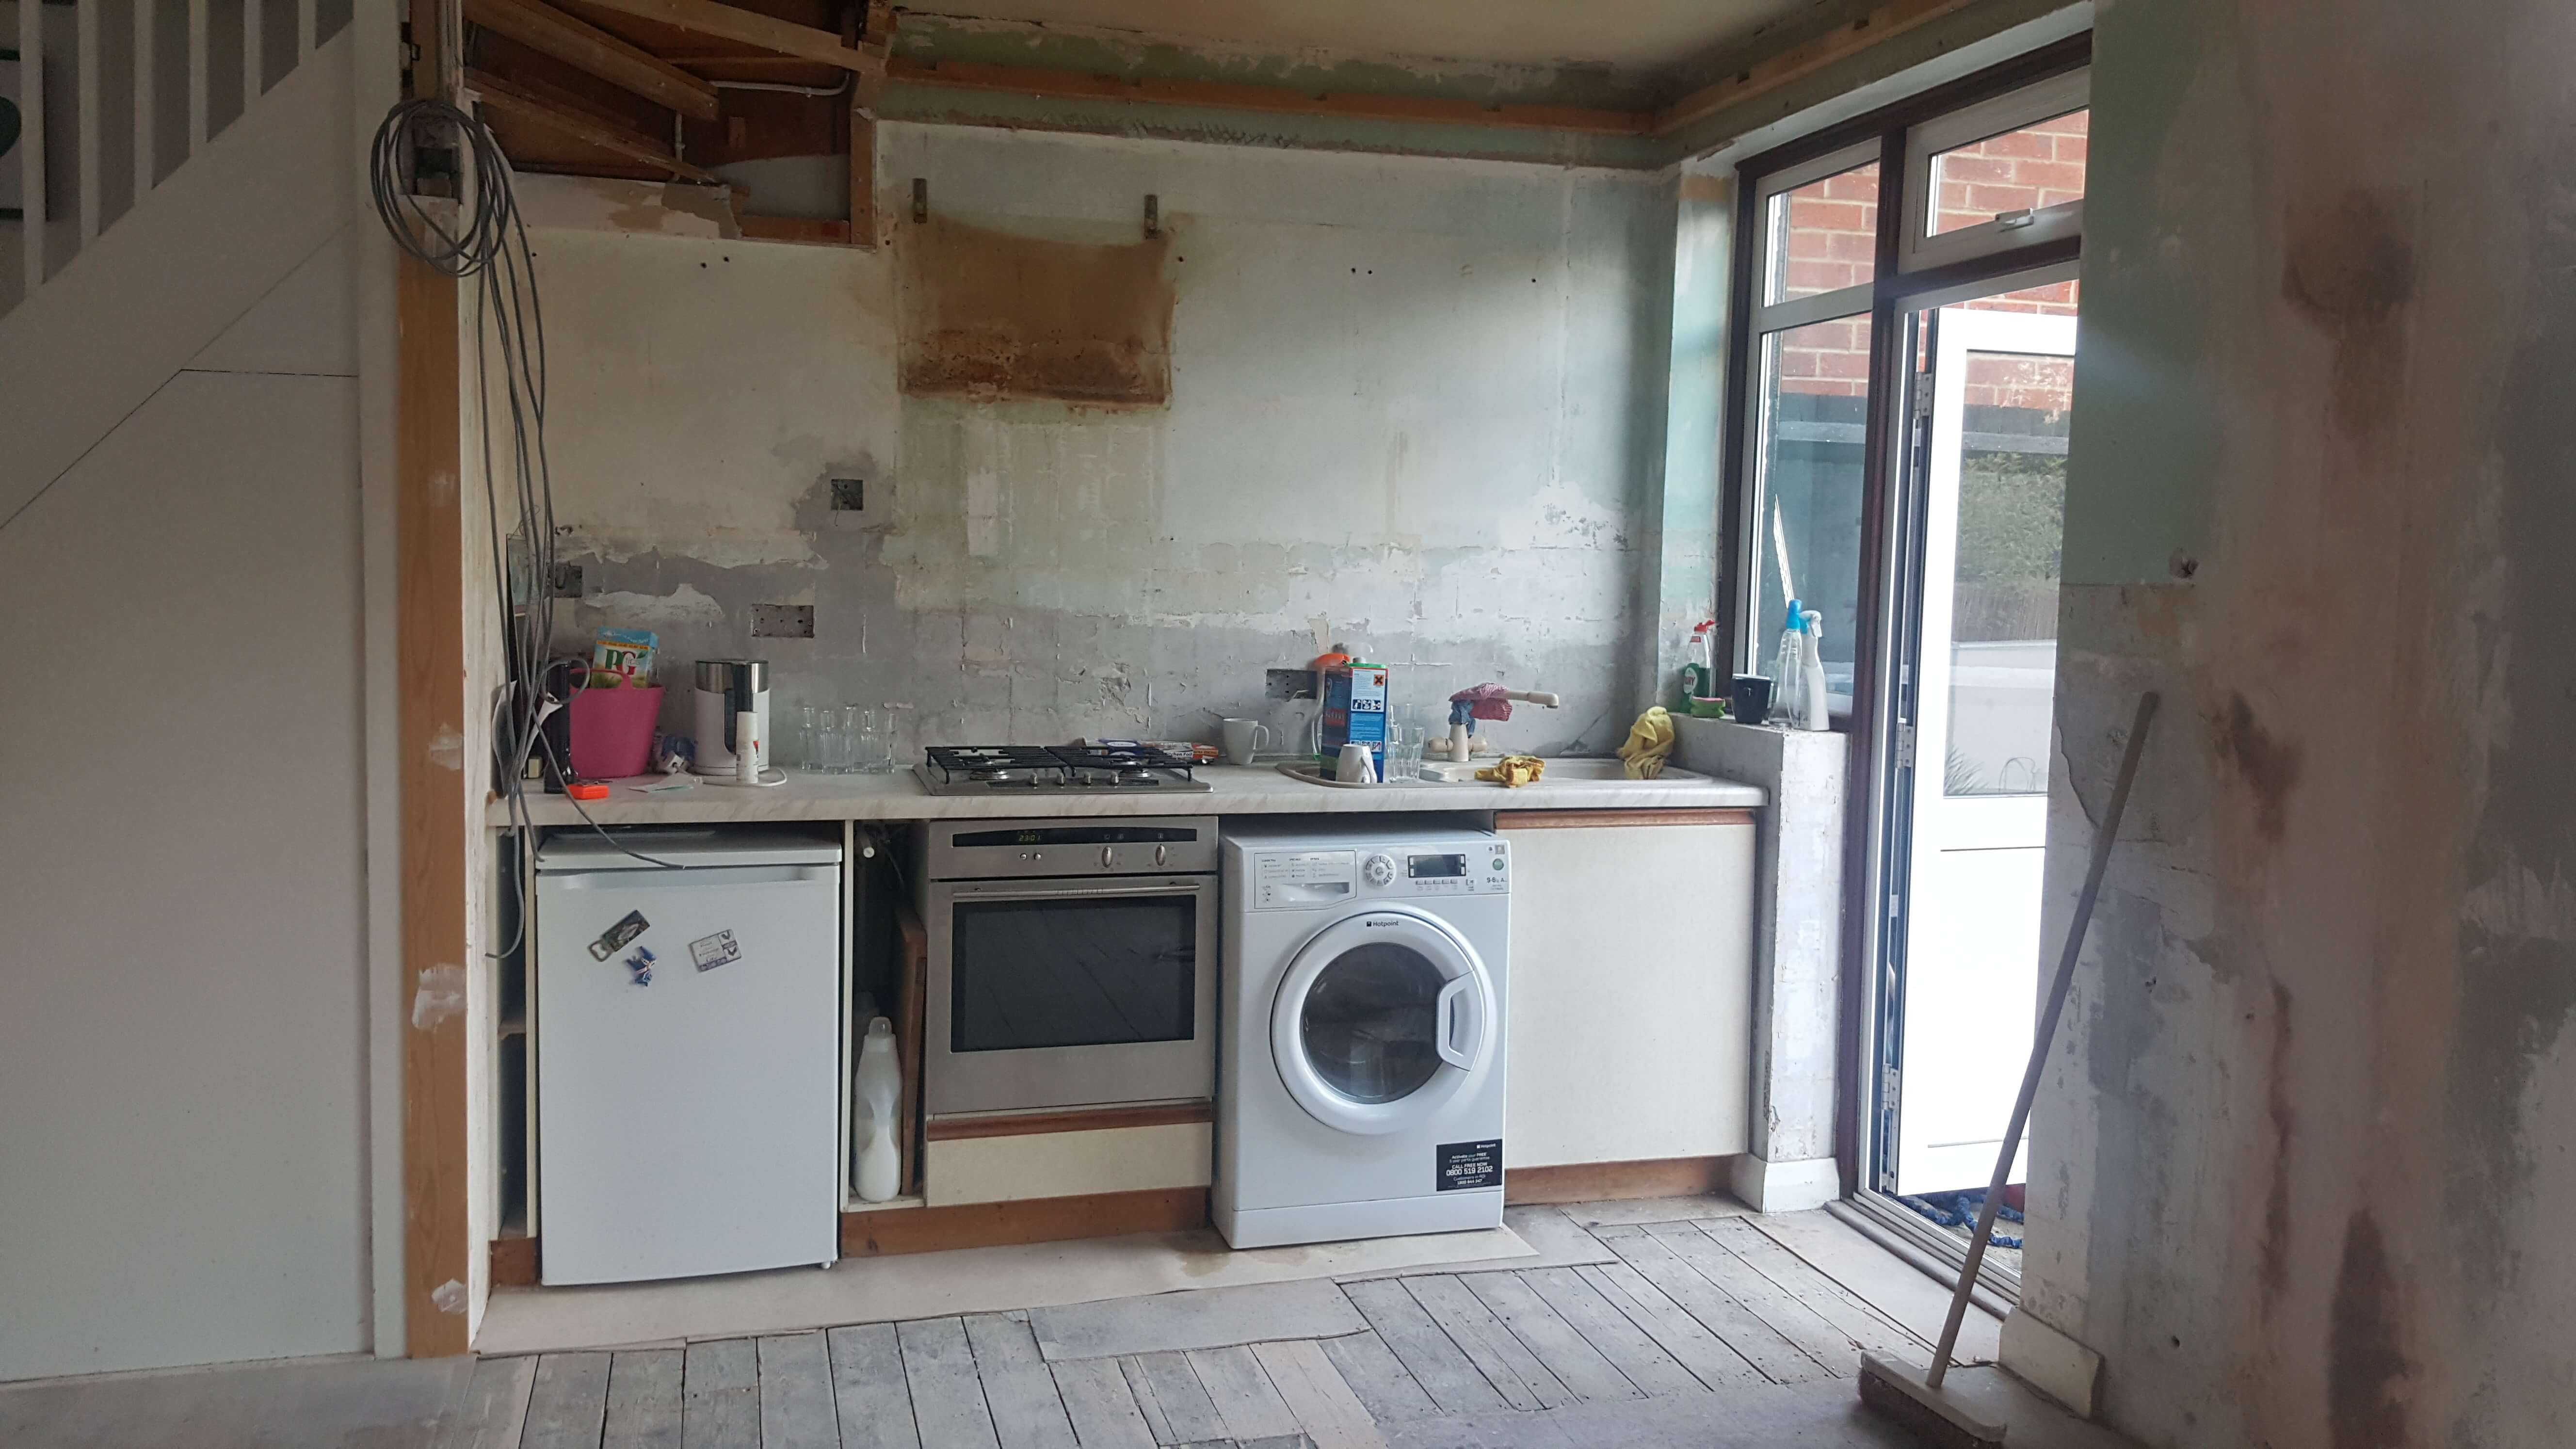 BEFORE Lucy's budget kitchen makeover - see the full before & after on www.lovetohome.co.uk